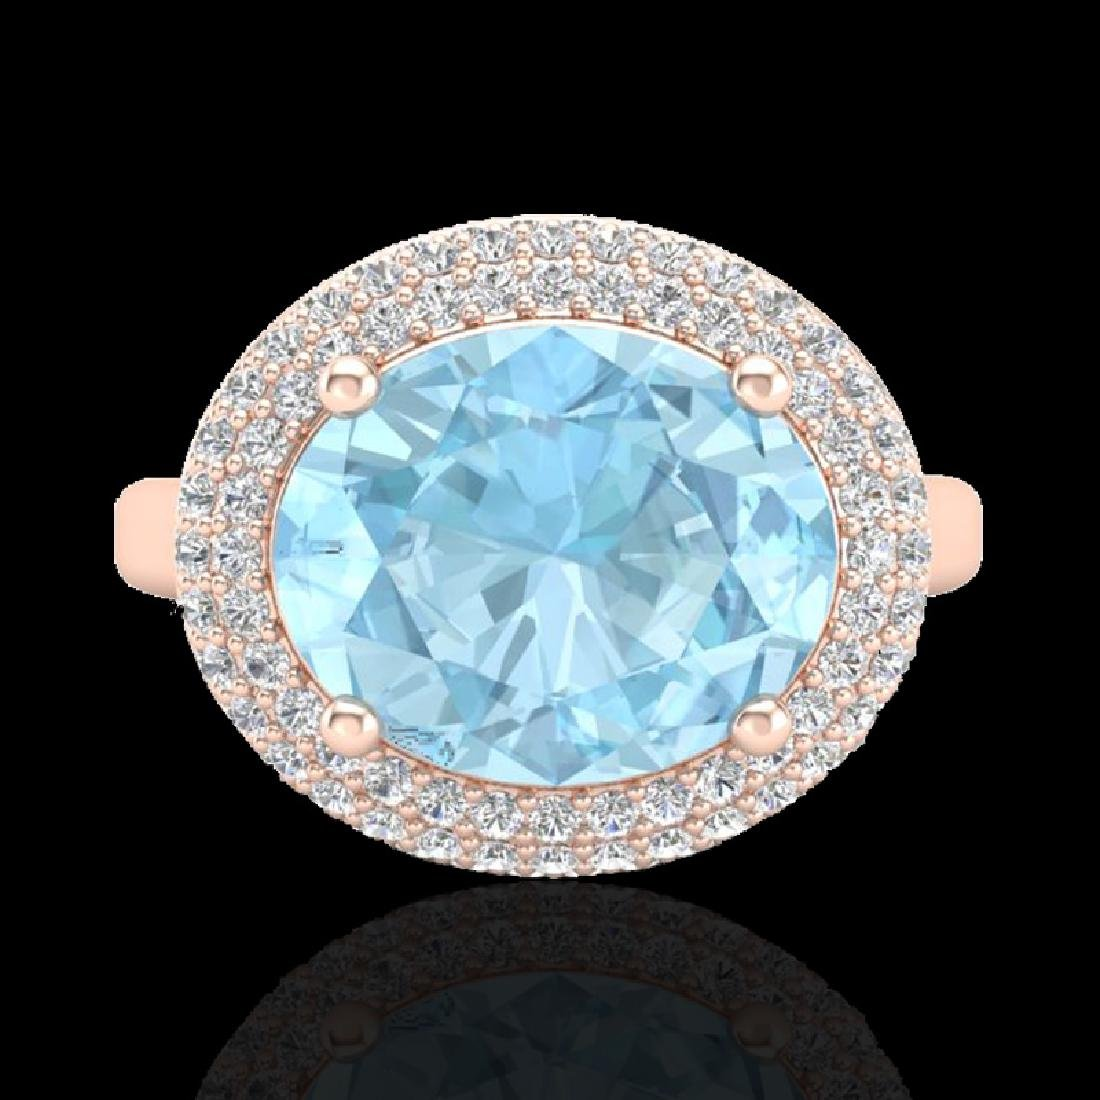 4 CTW Aquamarine & Micro Pave VS/SI Diamond Ring 14K - 2